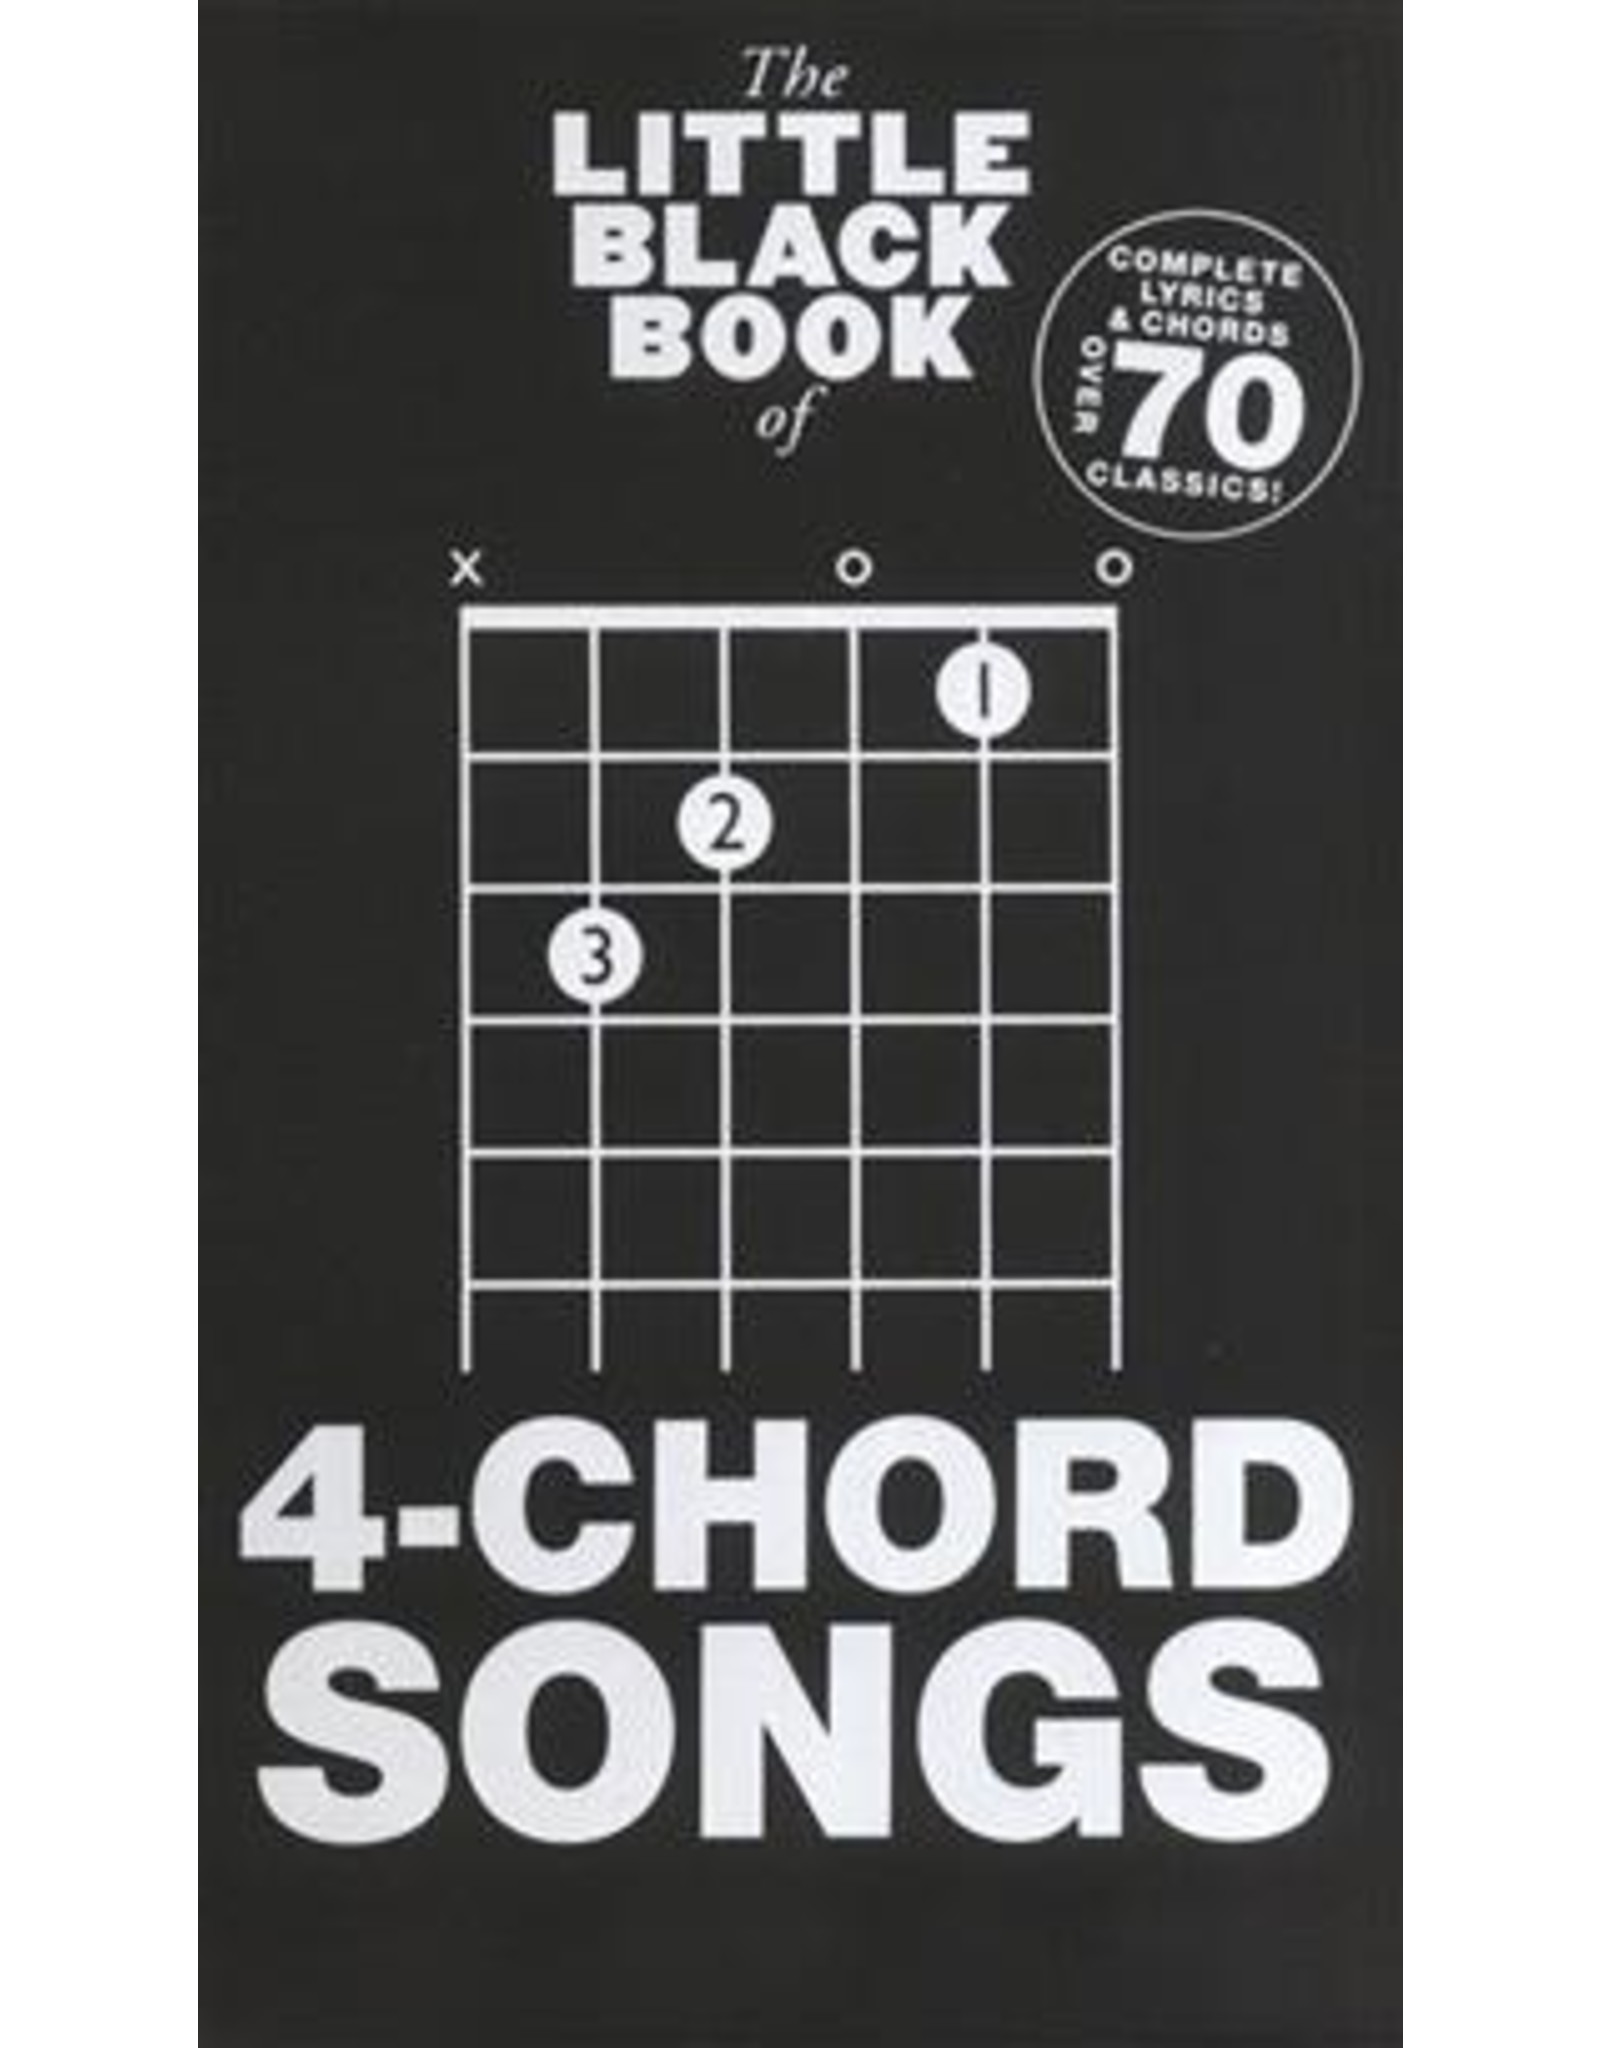 The Little Black Songbook: 4- Chord Songs